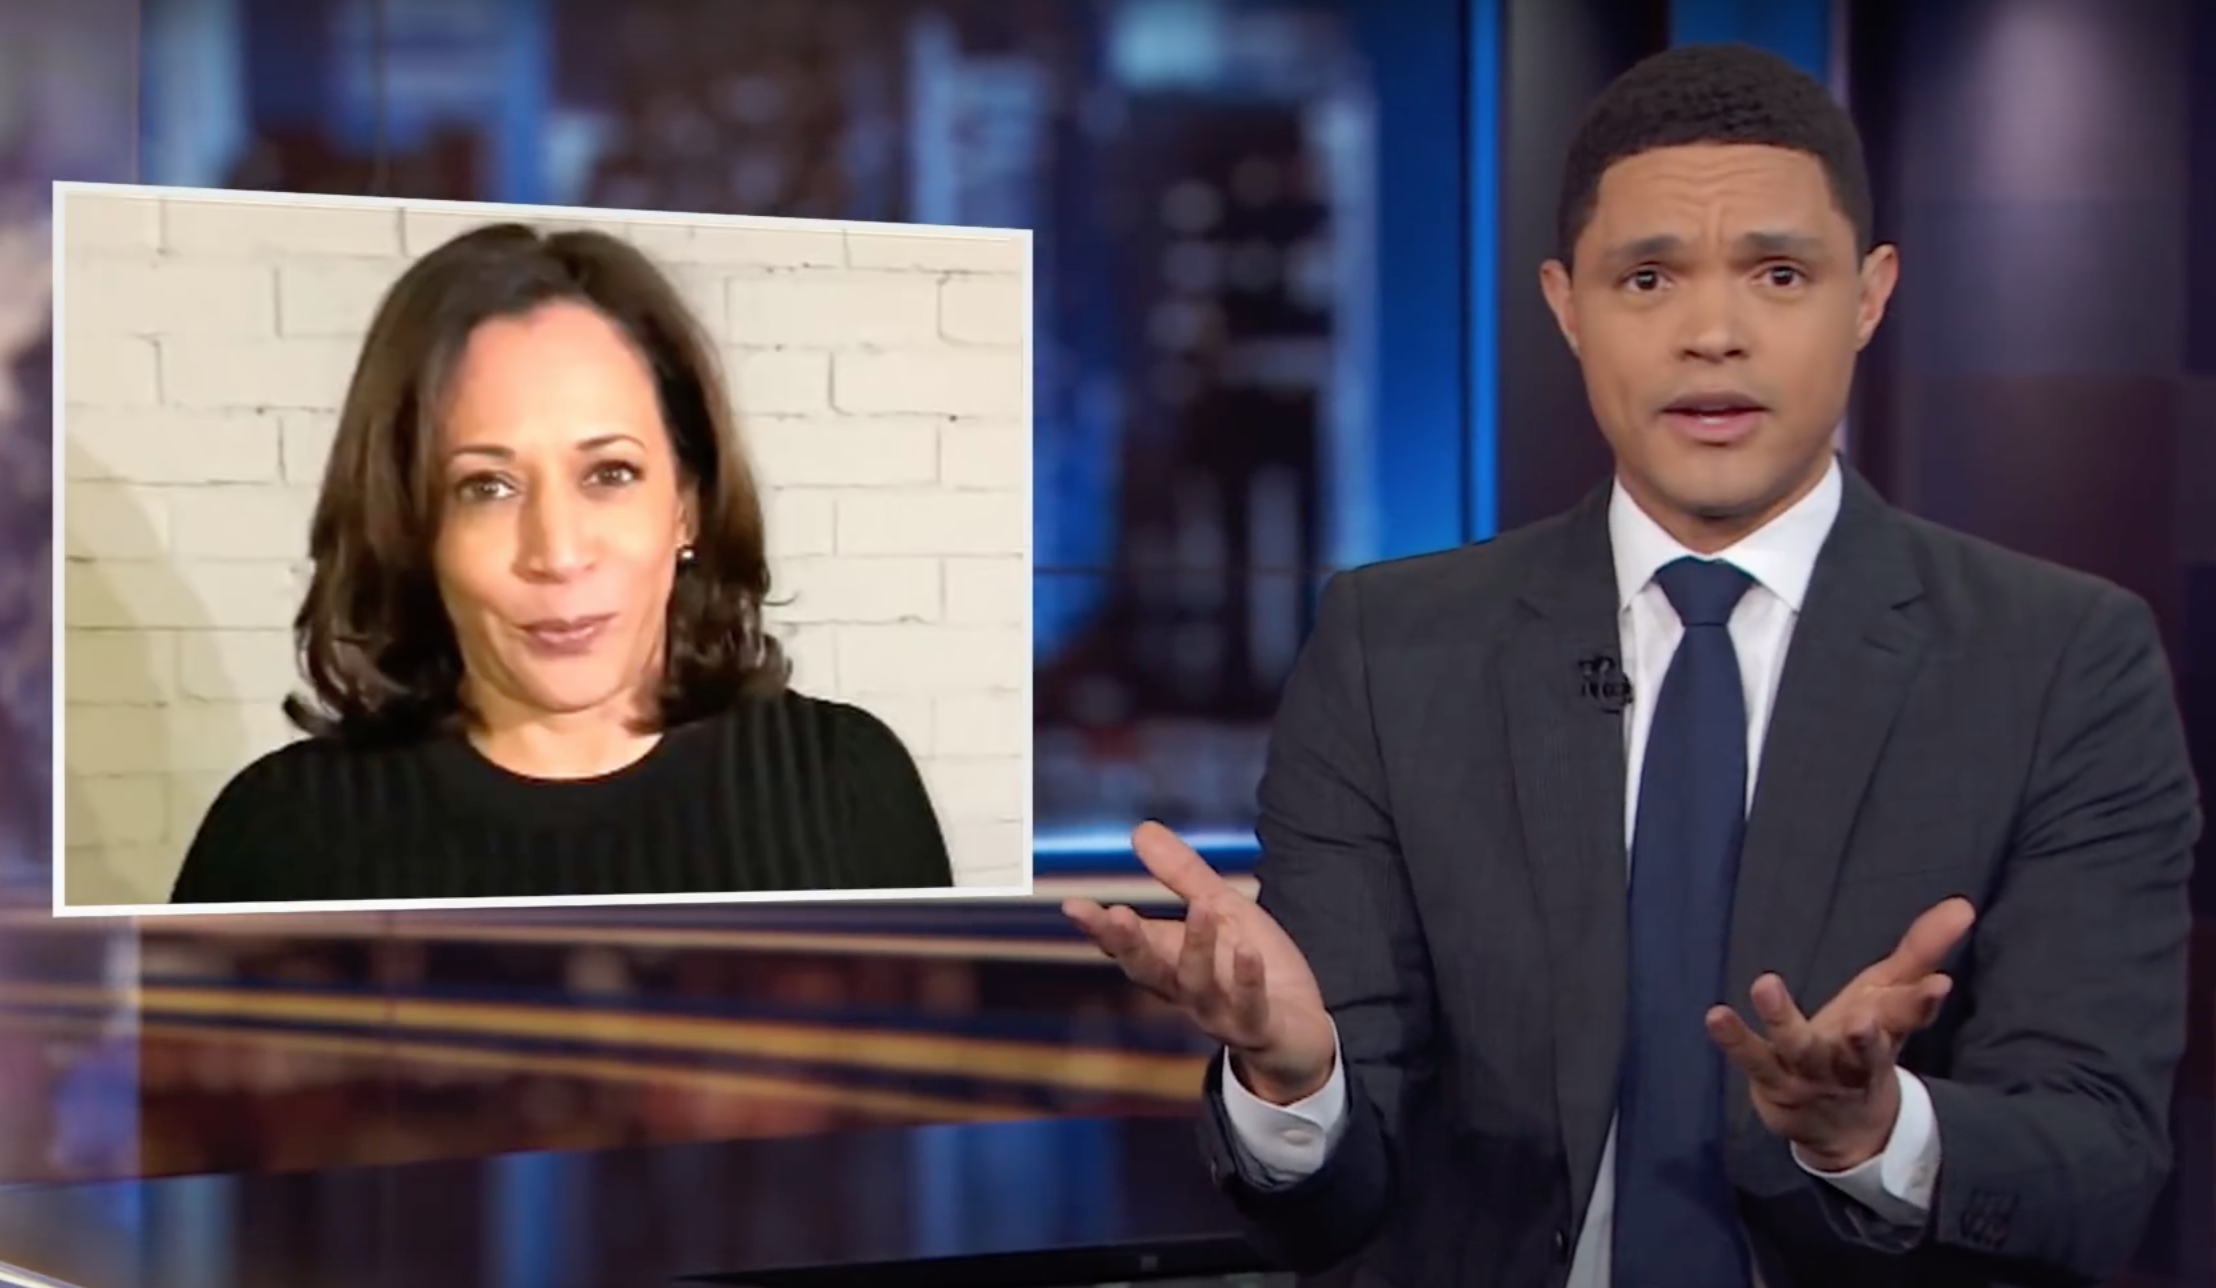 Kamala Harris Biden Endorsement Video Mocked As Hostage Footage The Independent The Independent